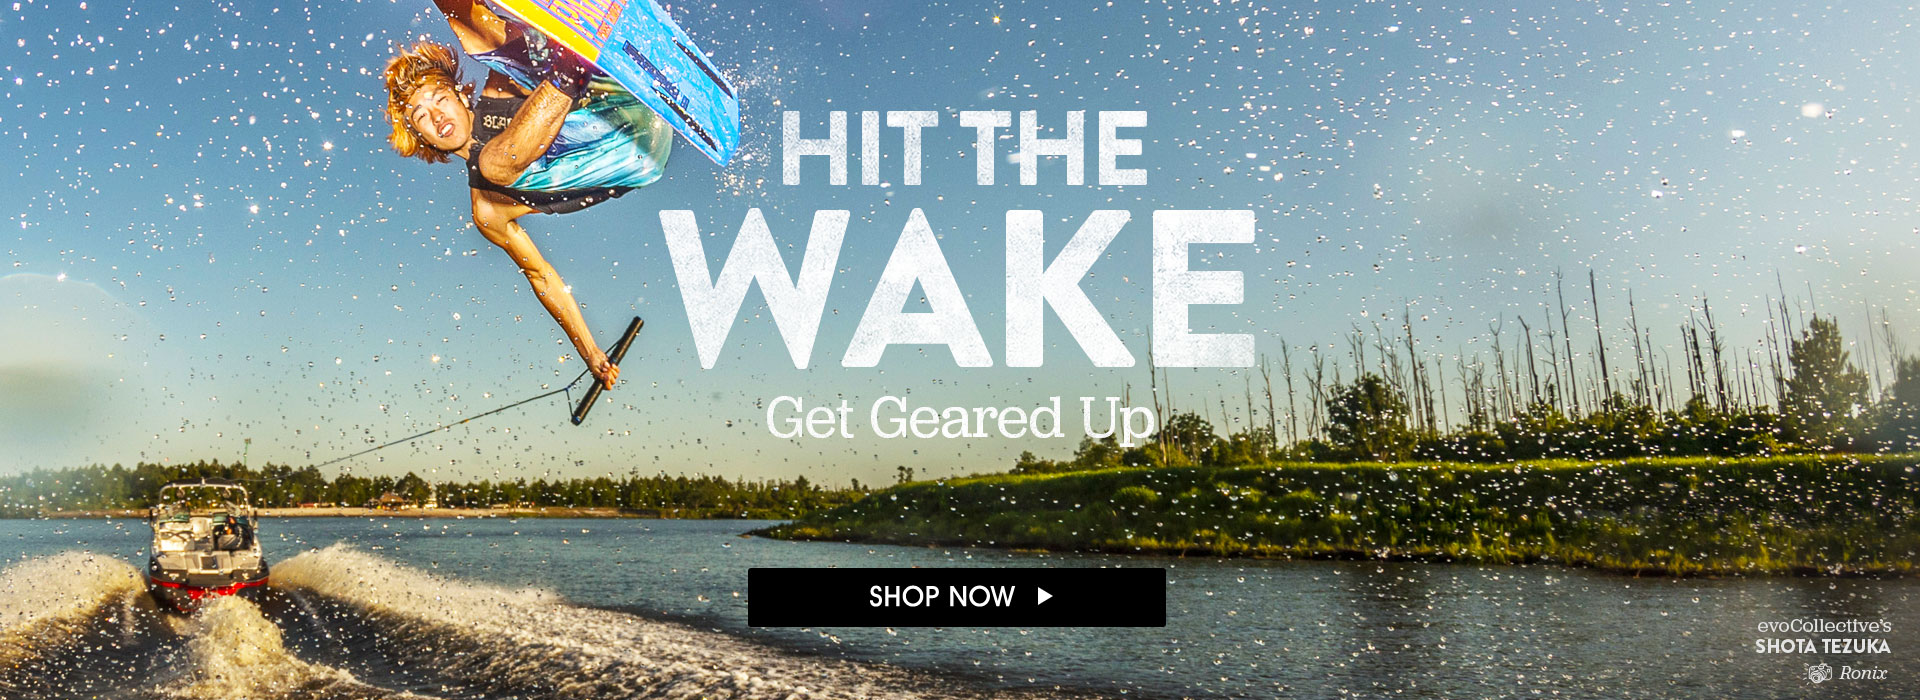 Hit The Wake. Get Geared Up. Shop Now.